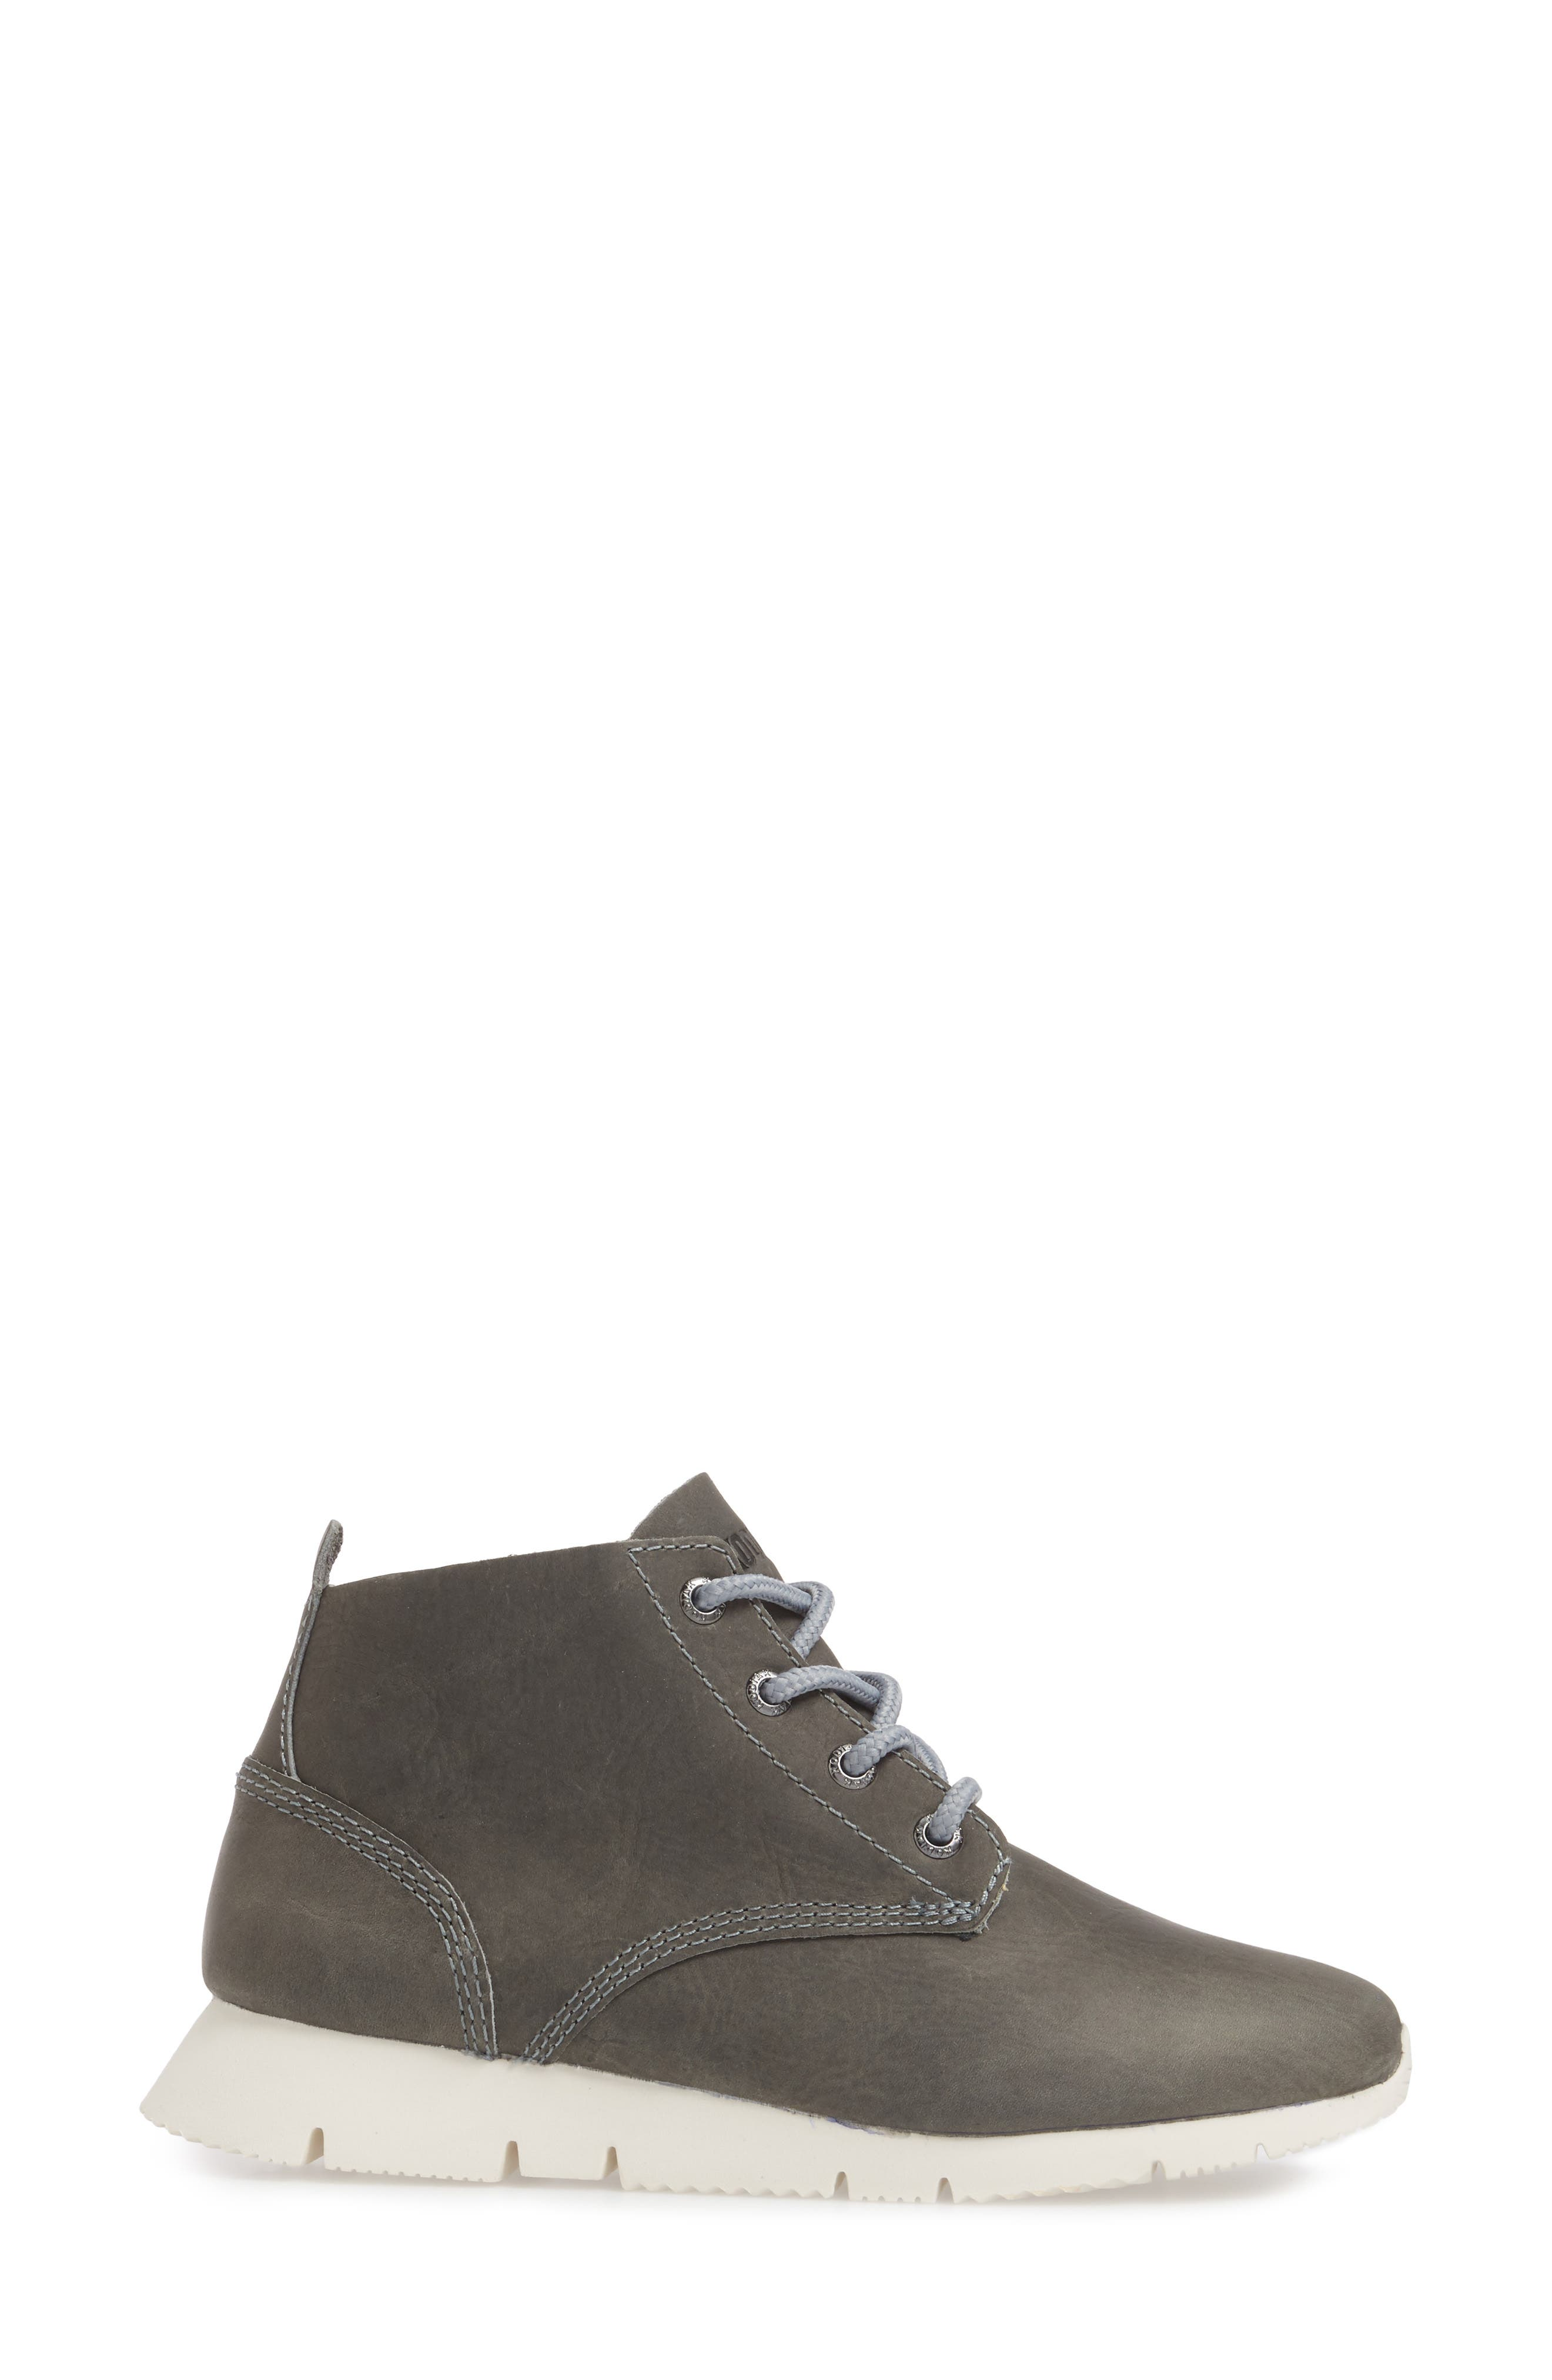 Chukka Boot,                             Alternate thumbnail 3, color,                             GREY LEATHER